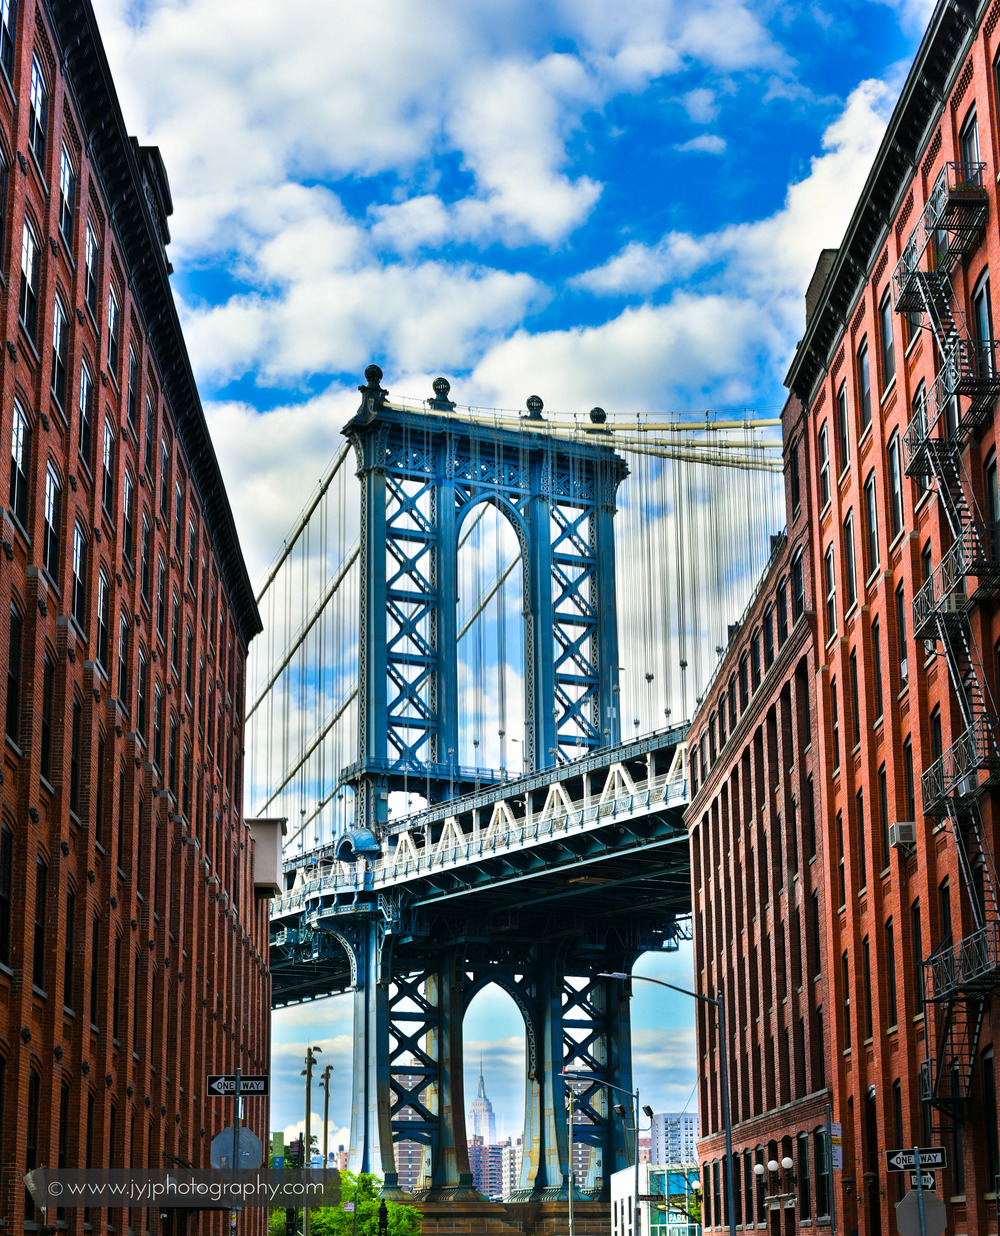 Manhattan Bridge. Image shot at Water Street and Washington Street.